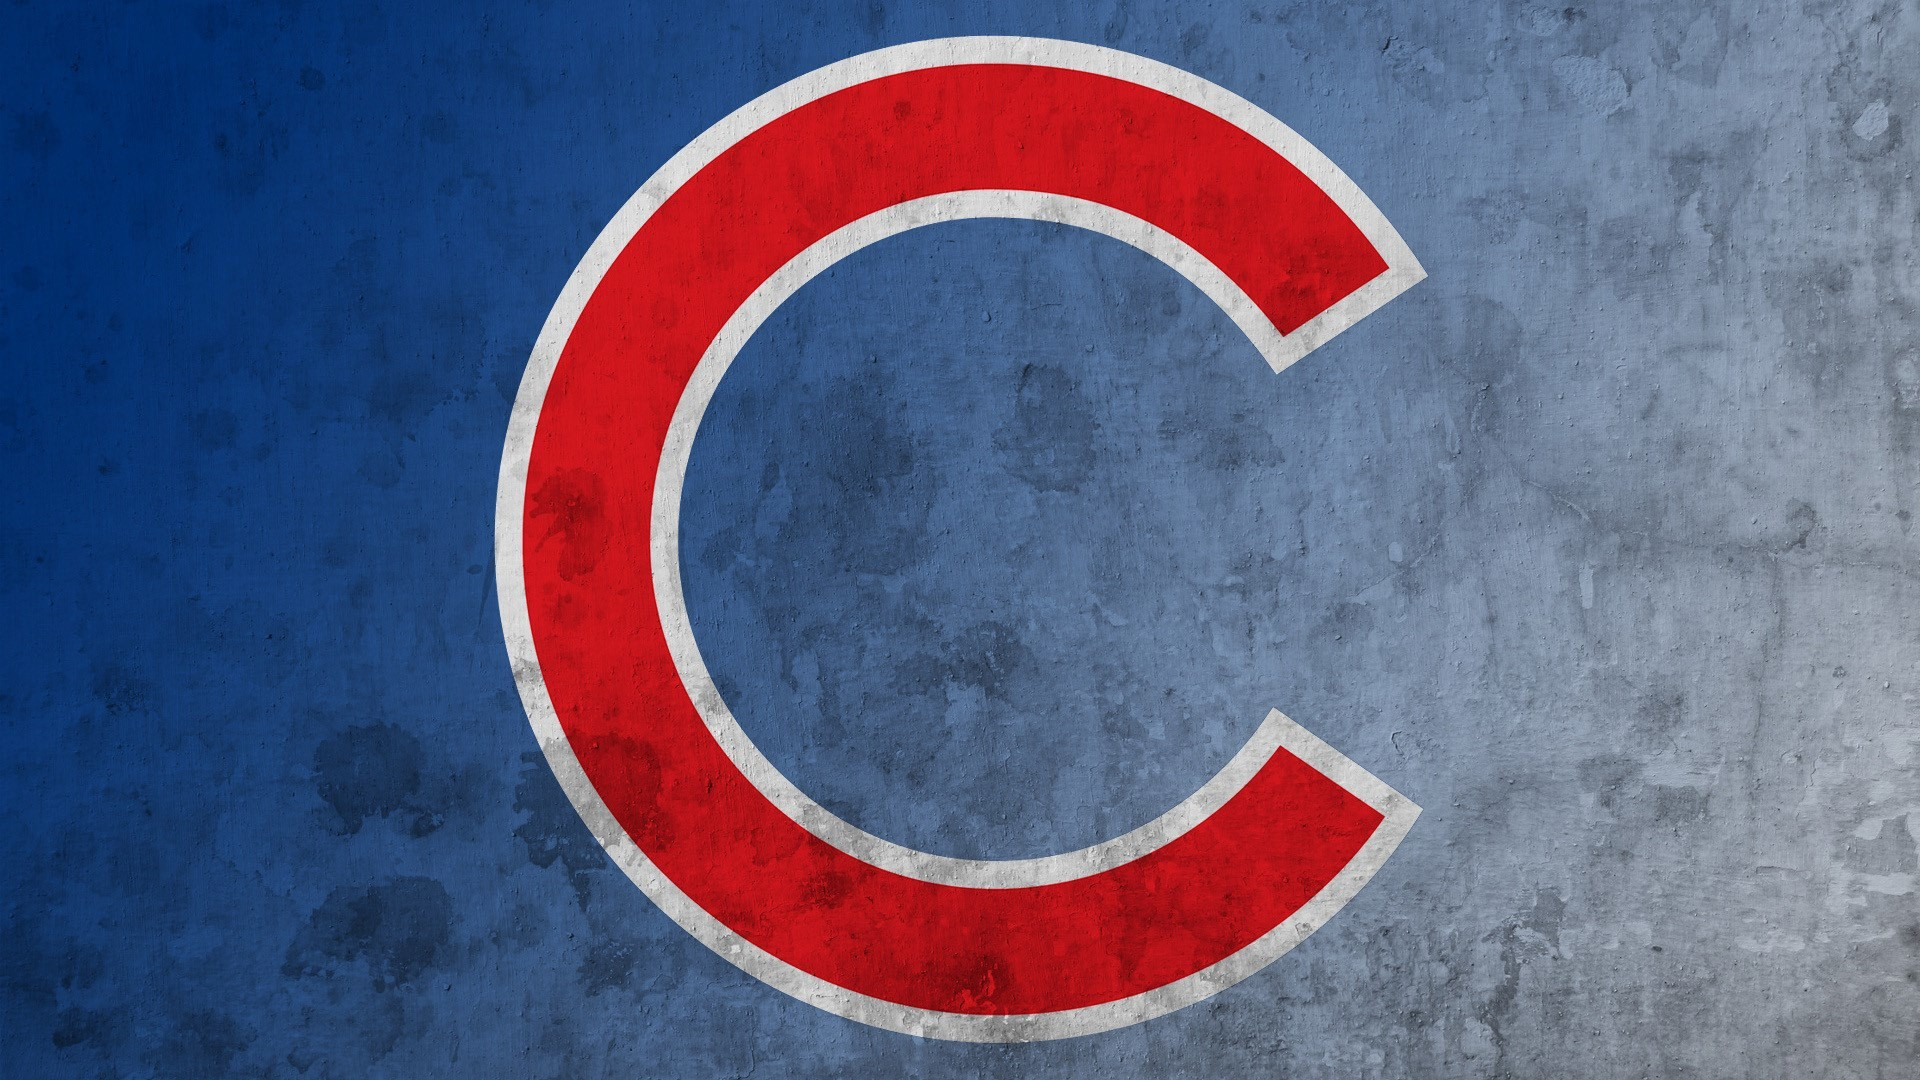 1920x1080 chicago cubs desktop backgrounds wallpaper, 1920x1080 (510 kB)